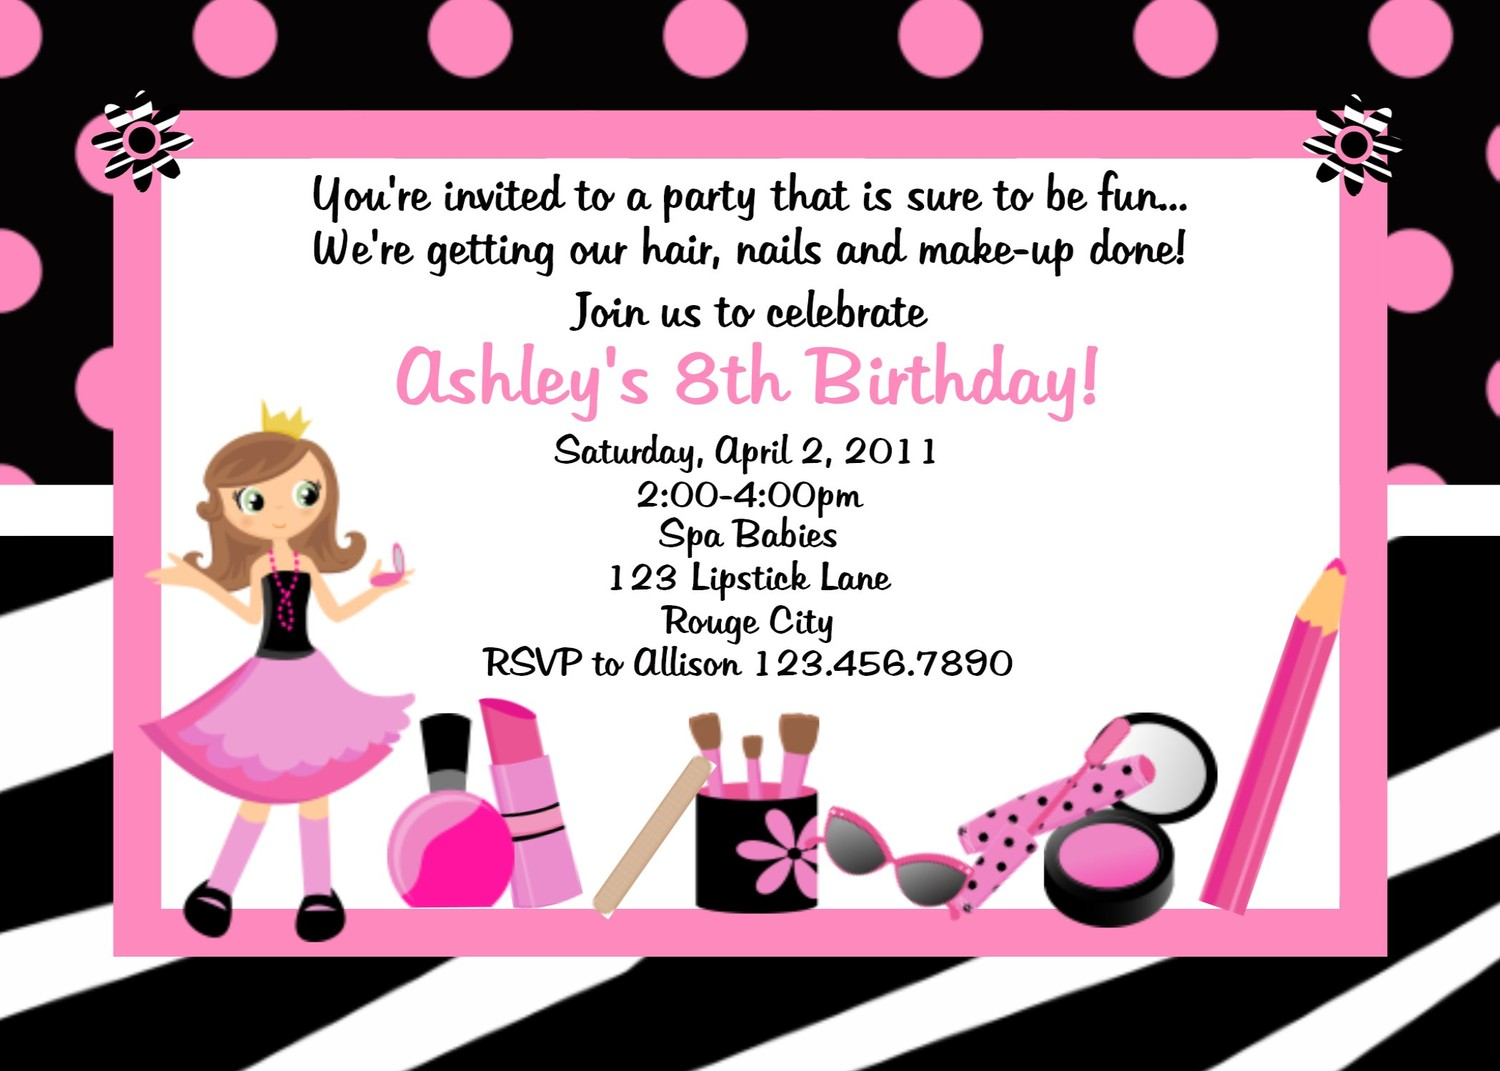 Printable Birthday Invitations, Spa Party,